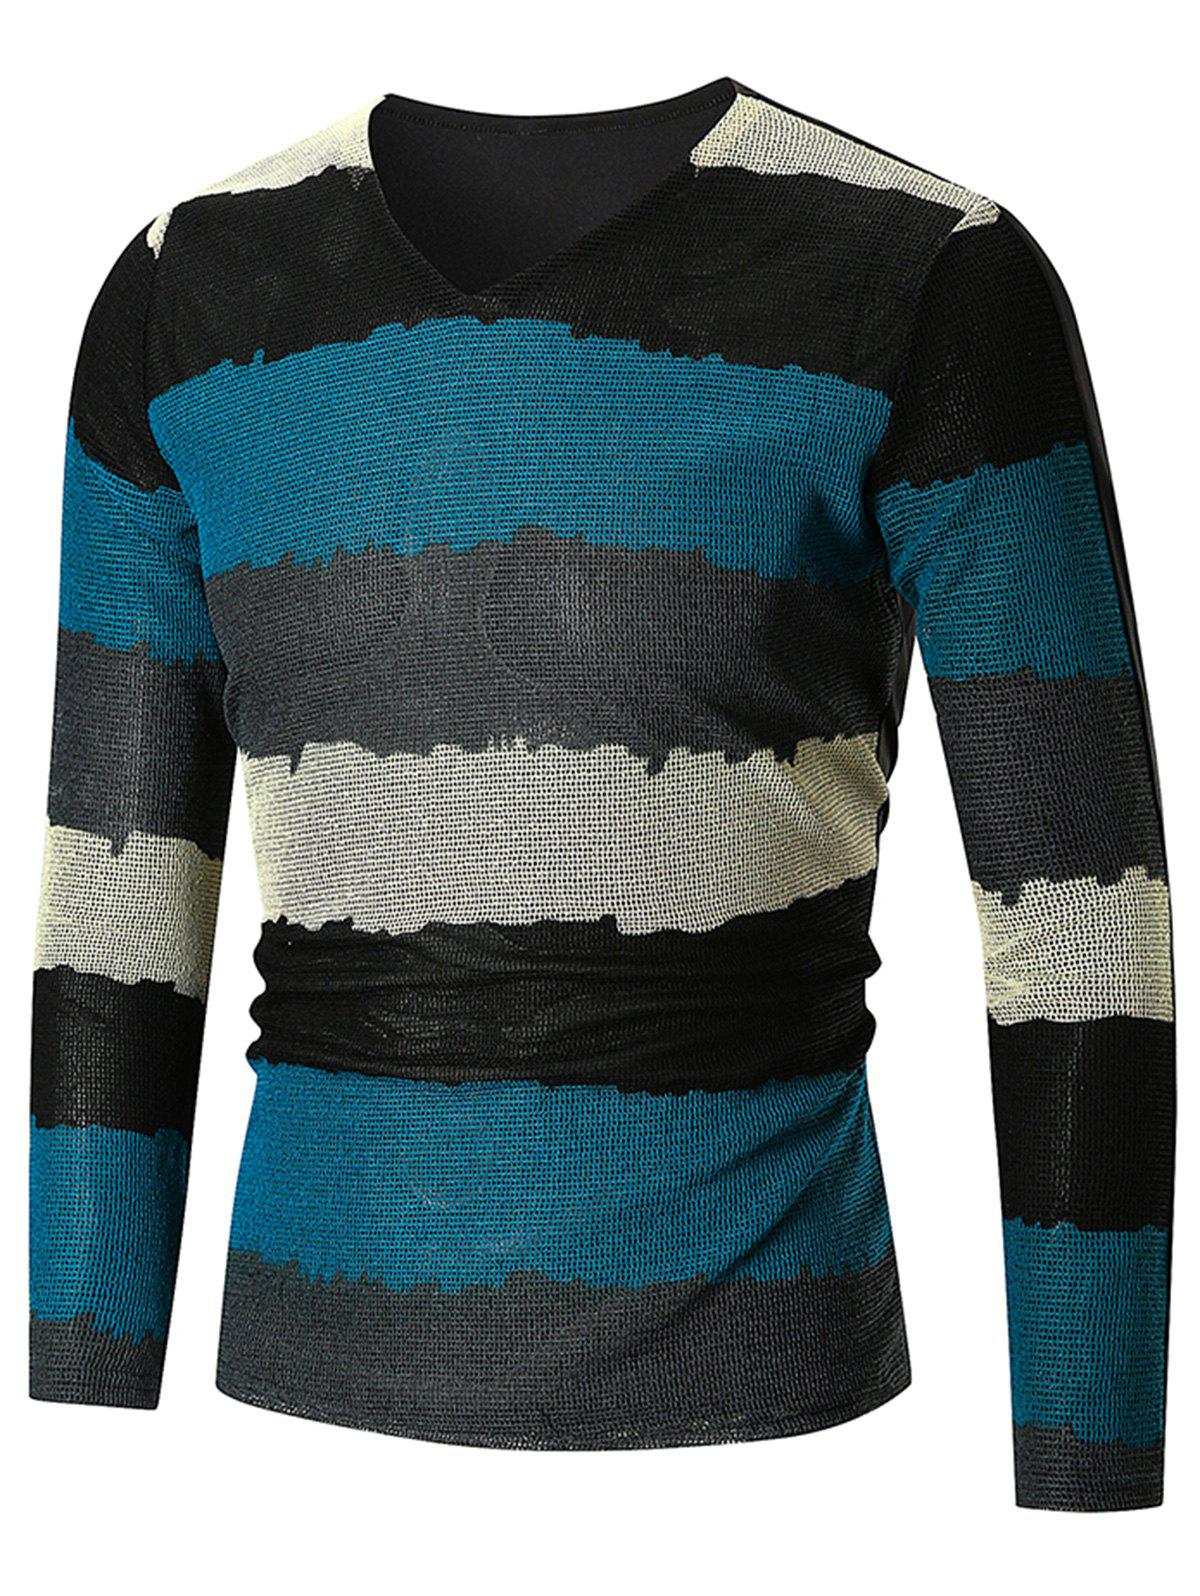 V Neck Wide Stripe Print Long Sleeve T-shirt - WINDOWS BLUE 4XL